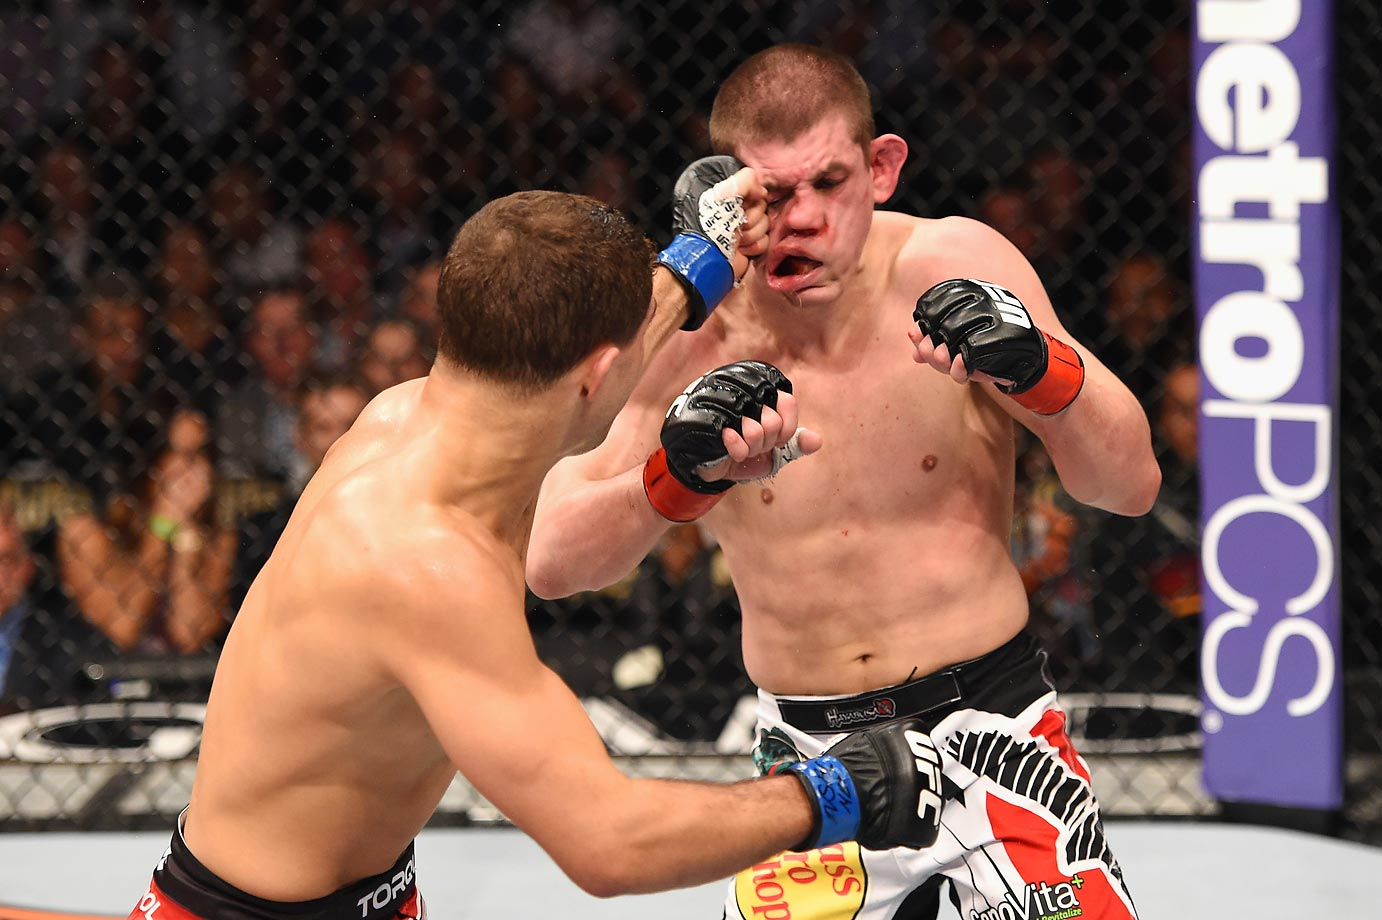 Al Iaquinta punches Joe Lauzon in their lightweight bout at the UFC 183 event in Las Vegas.